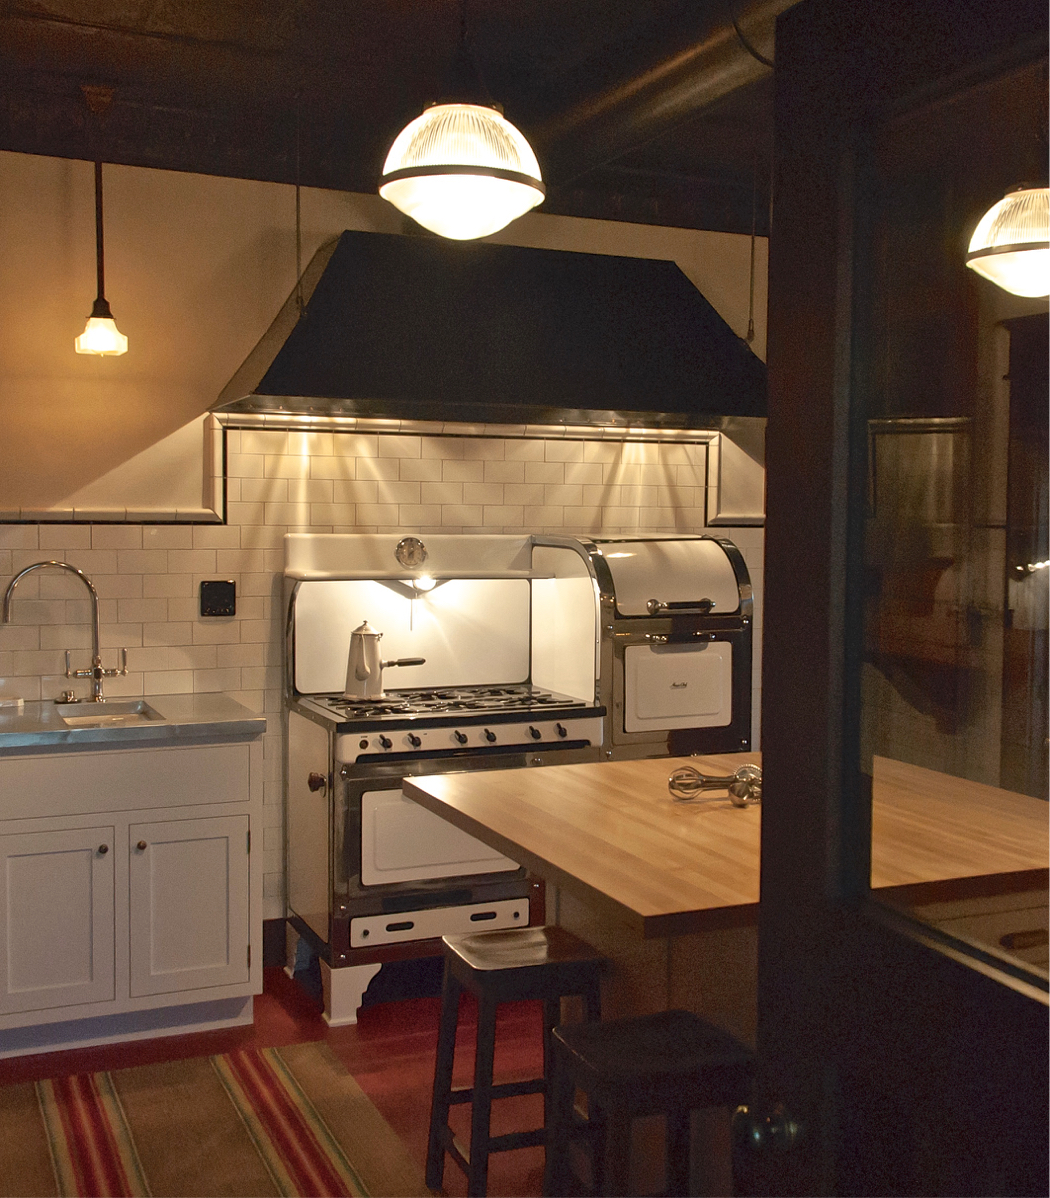 Montana Ranch Architecture and Arts and Crafts Interior Design for Historic Homestead Setting featuring vintage Magic Chef Range with Blacksmith hood and linoleum floor